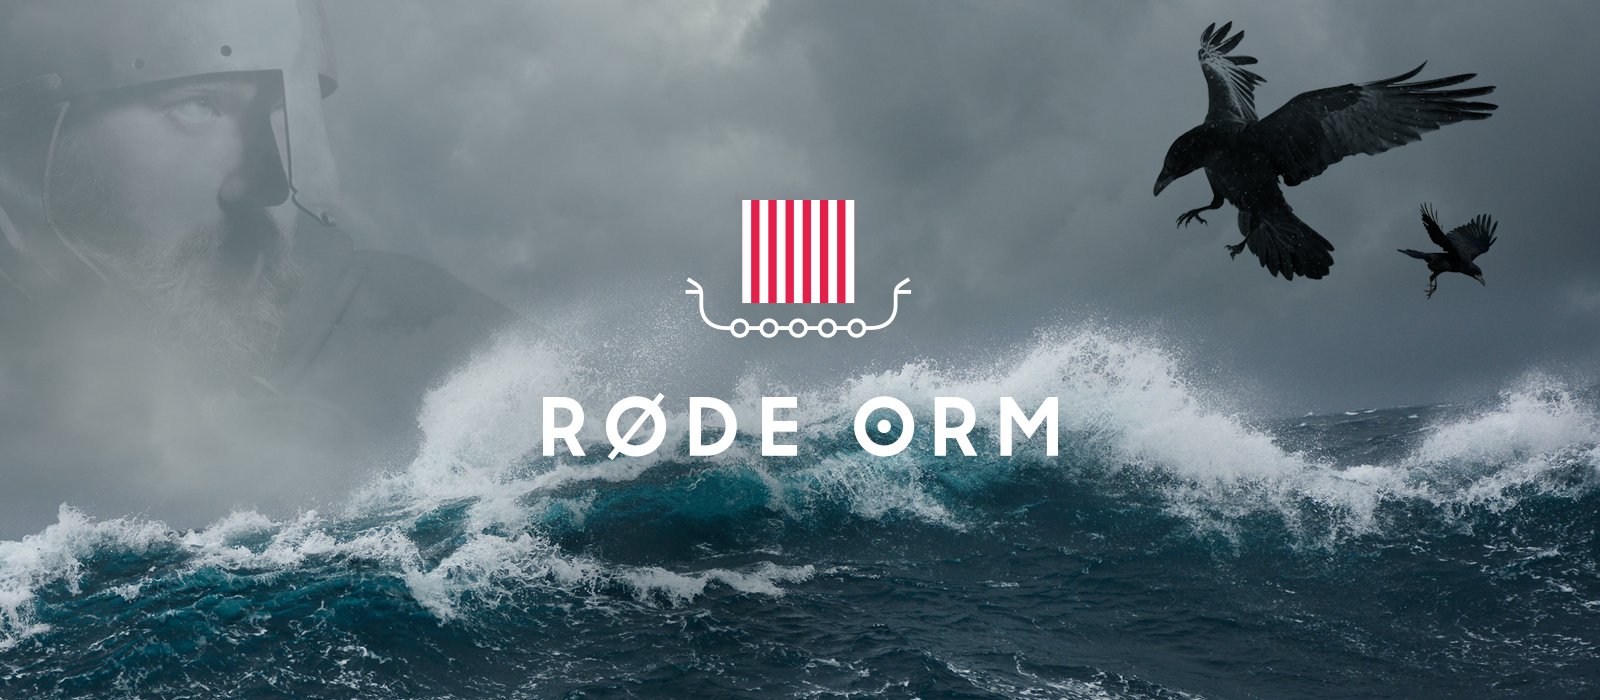 roede-orm_1600x700_nyjpg - 0